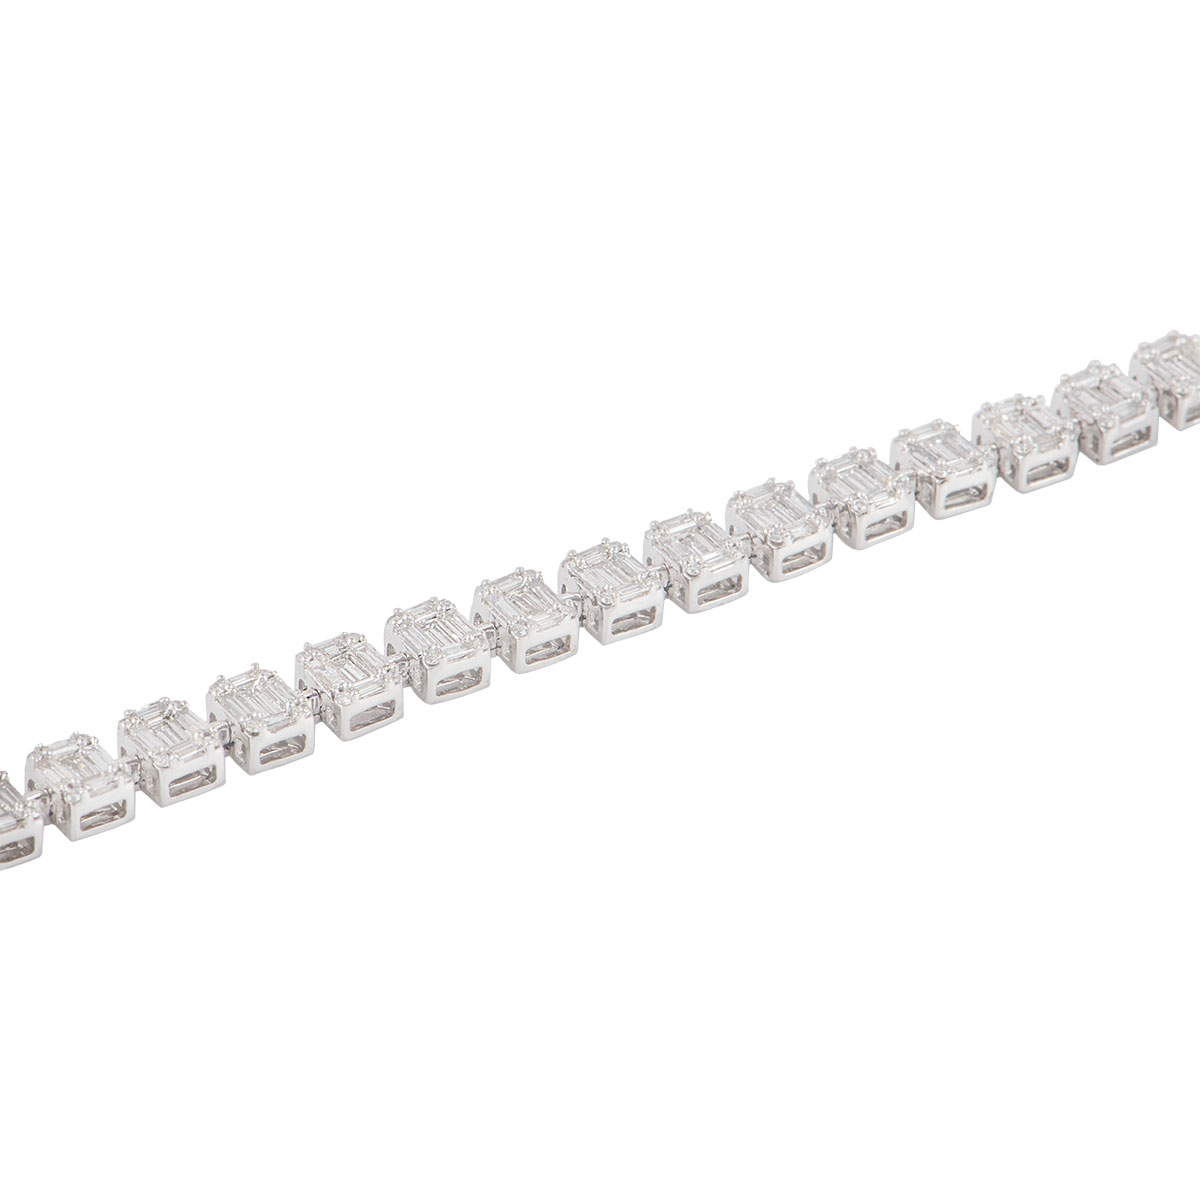 White Gold Illusion Diamond Line Bracelet 5.60ct G-H/VS